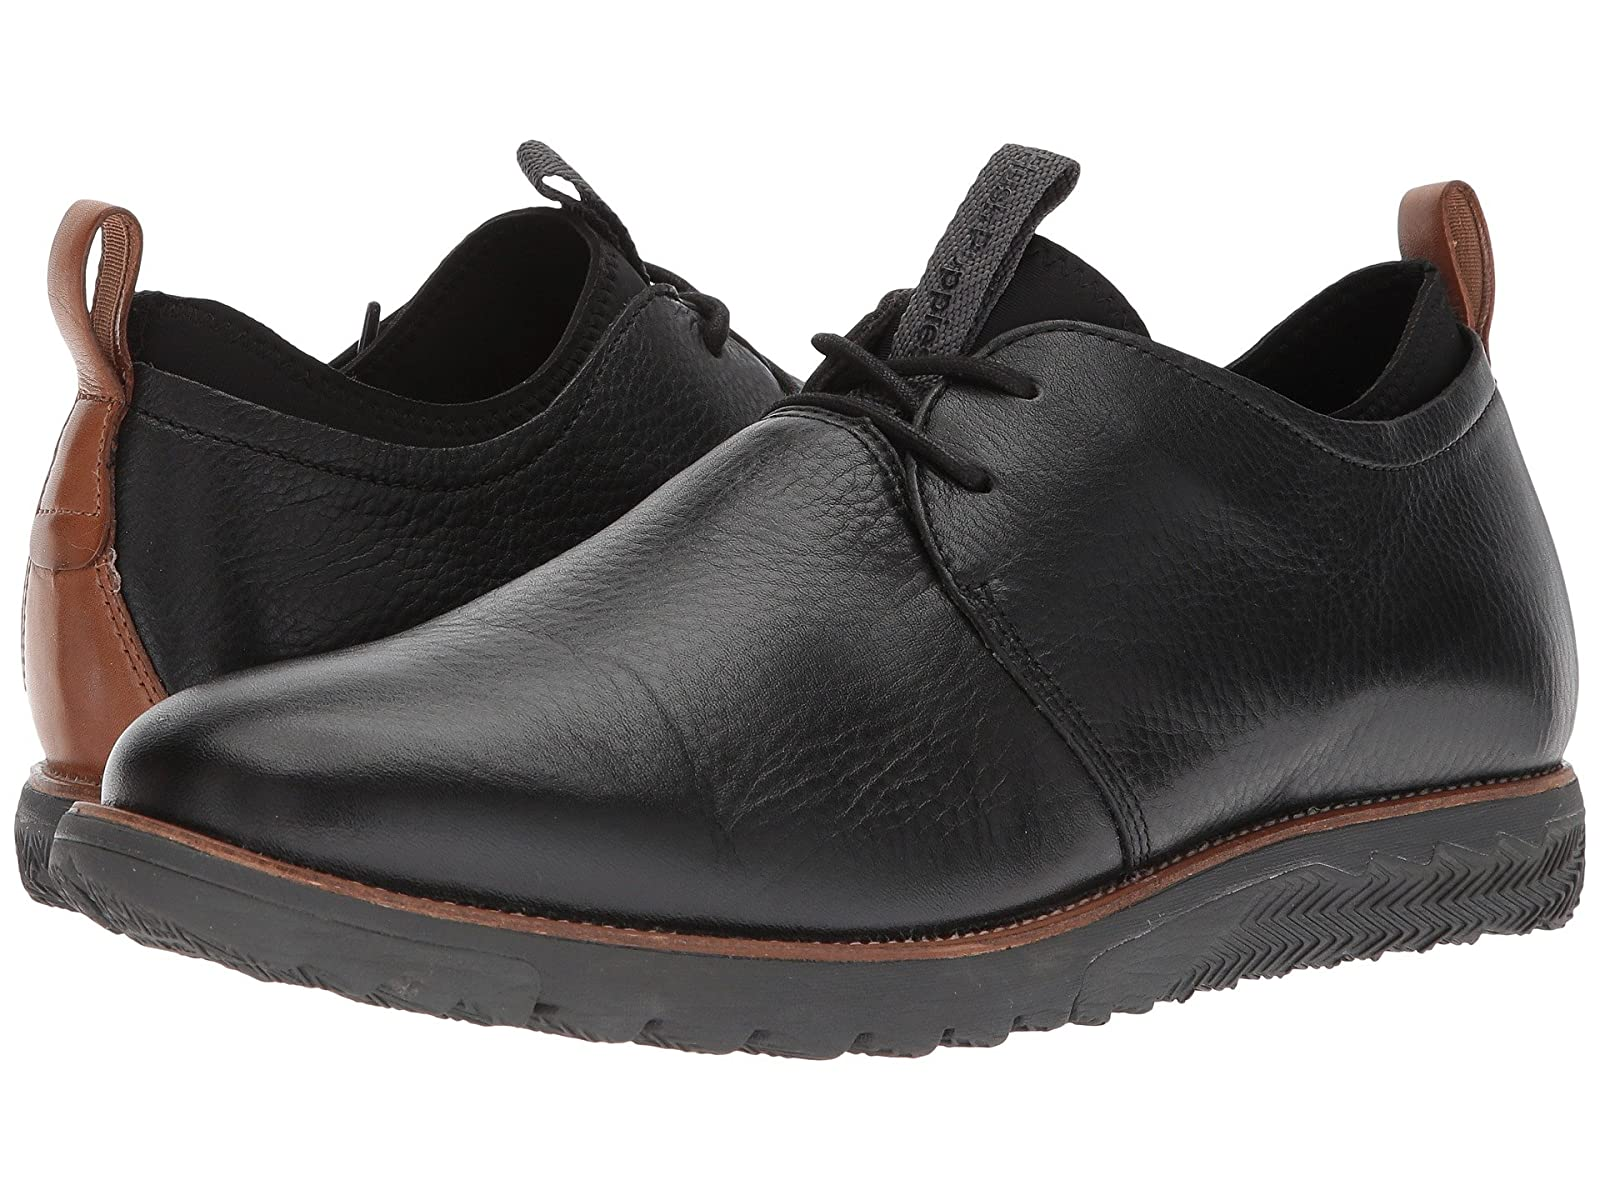 Hush Puppies Performance ExpertAtmospheric grades have affordable shoes